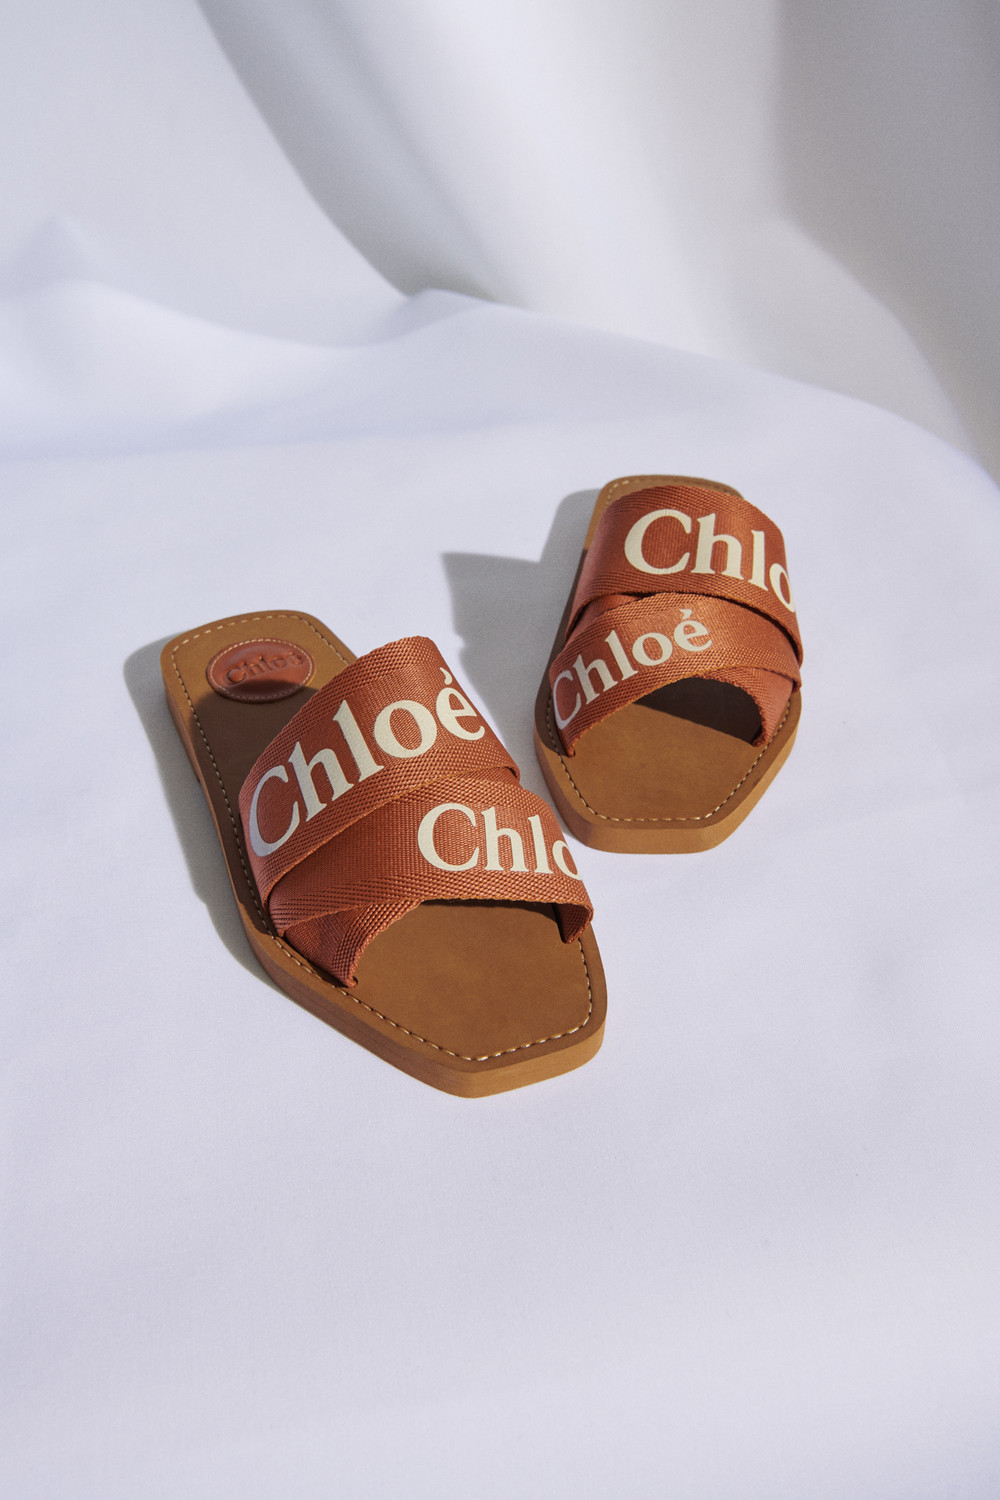 CHLOÉ HIGH SUMMER 20 - © KITTEN